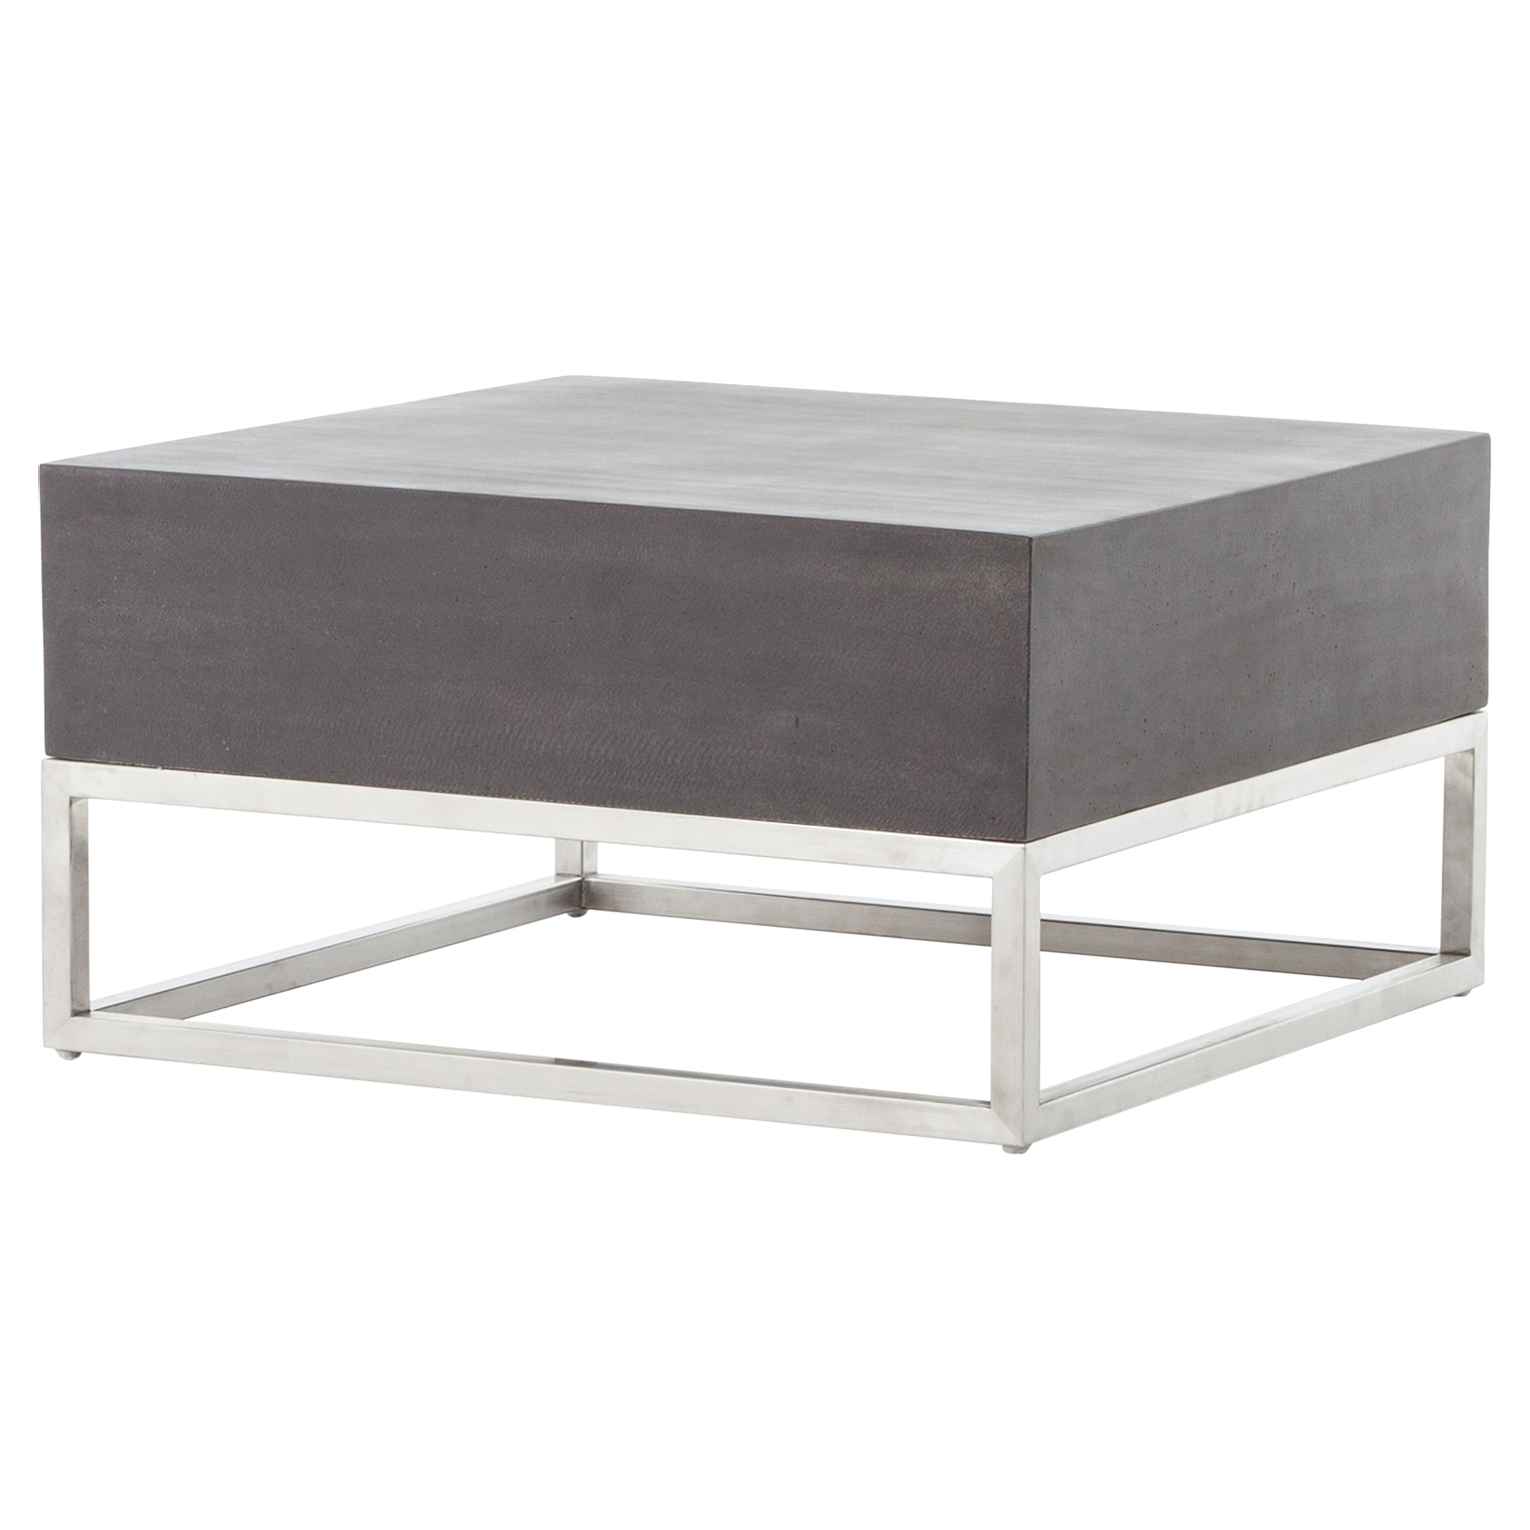 Loris Loft Lava Stone Stainless Steel Outdoor Coffee Table